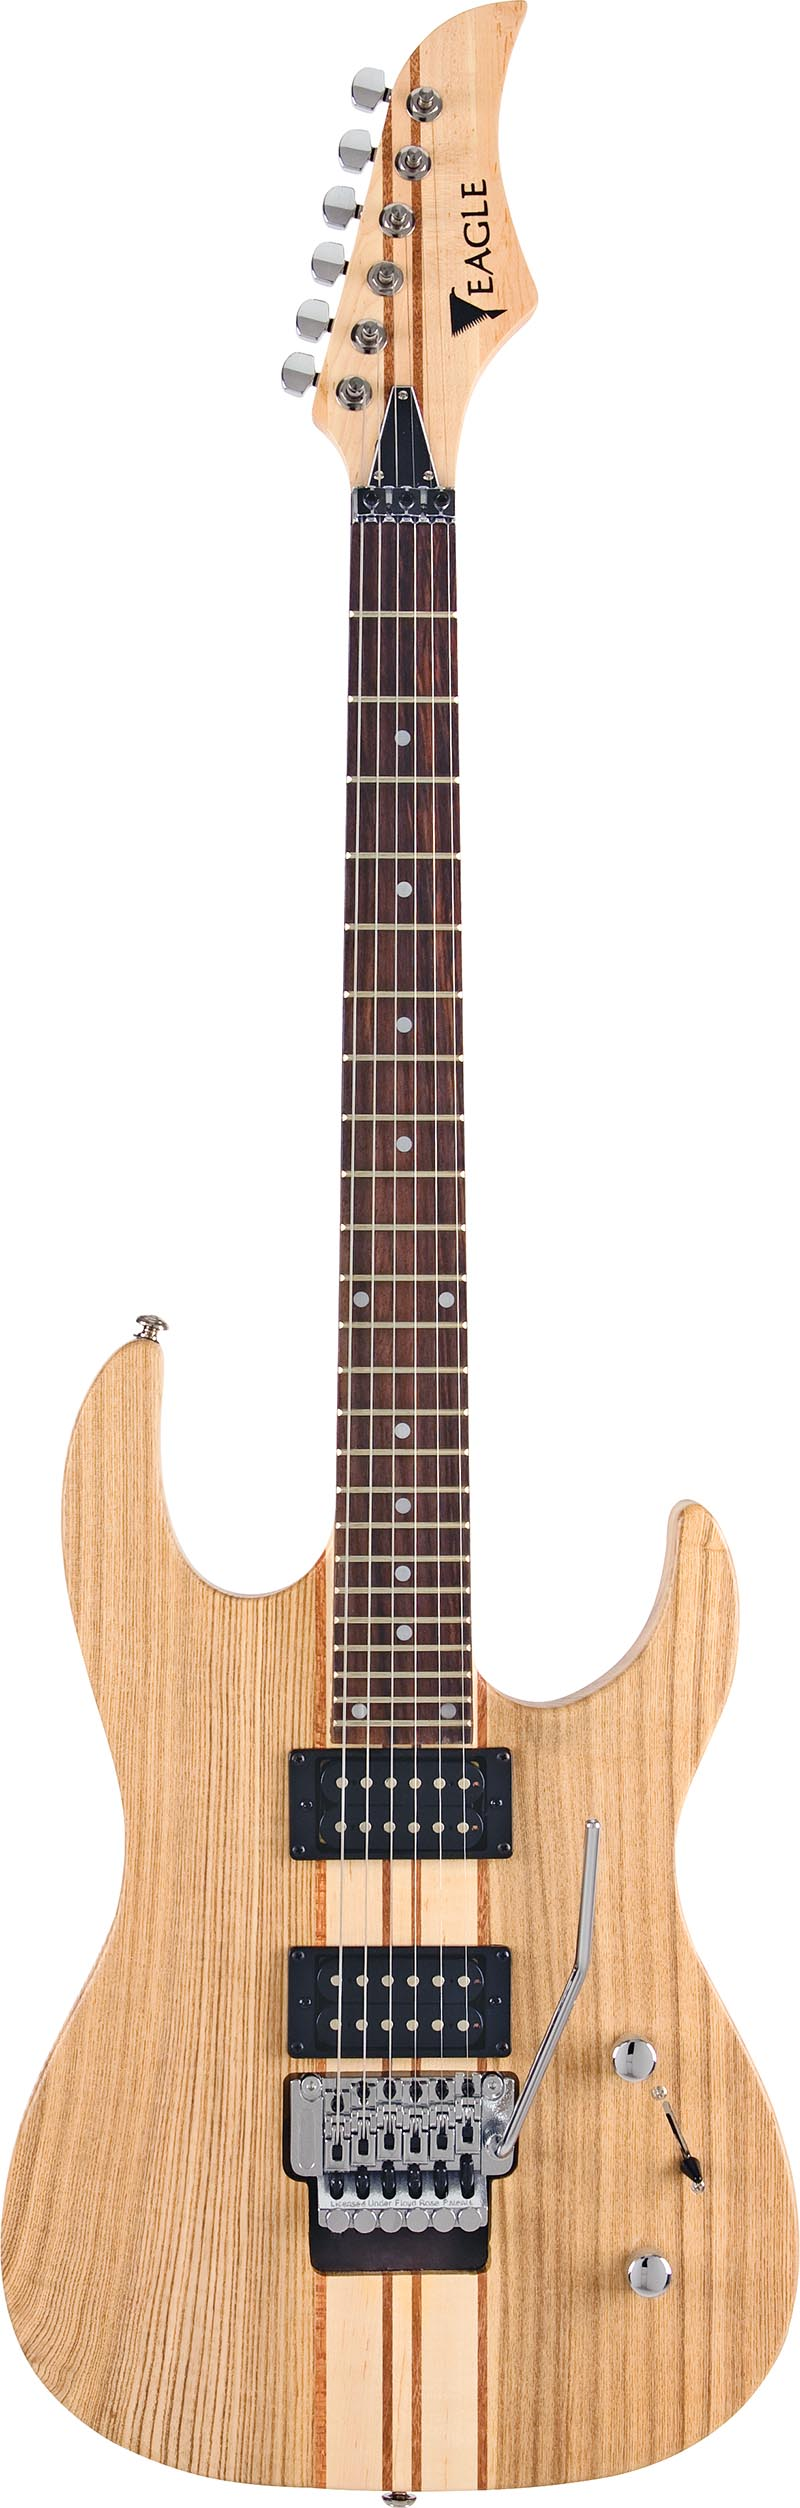 egt61 guitarra eletrica captador humbucker corpo inteirico floyd rose eagle egt61 nt natural visao frontal vertical